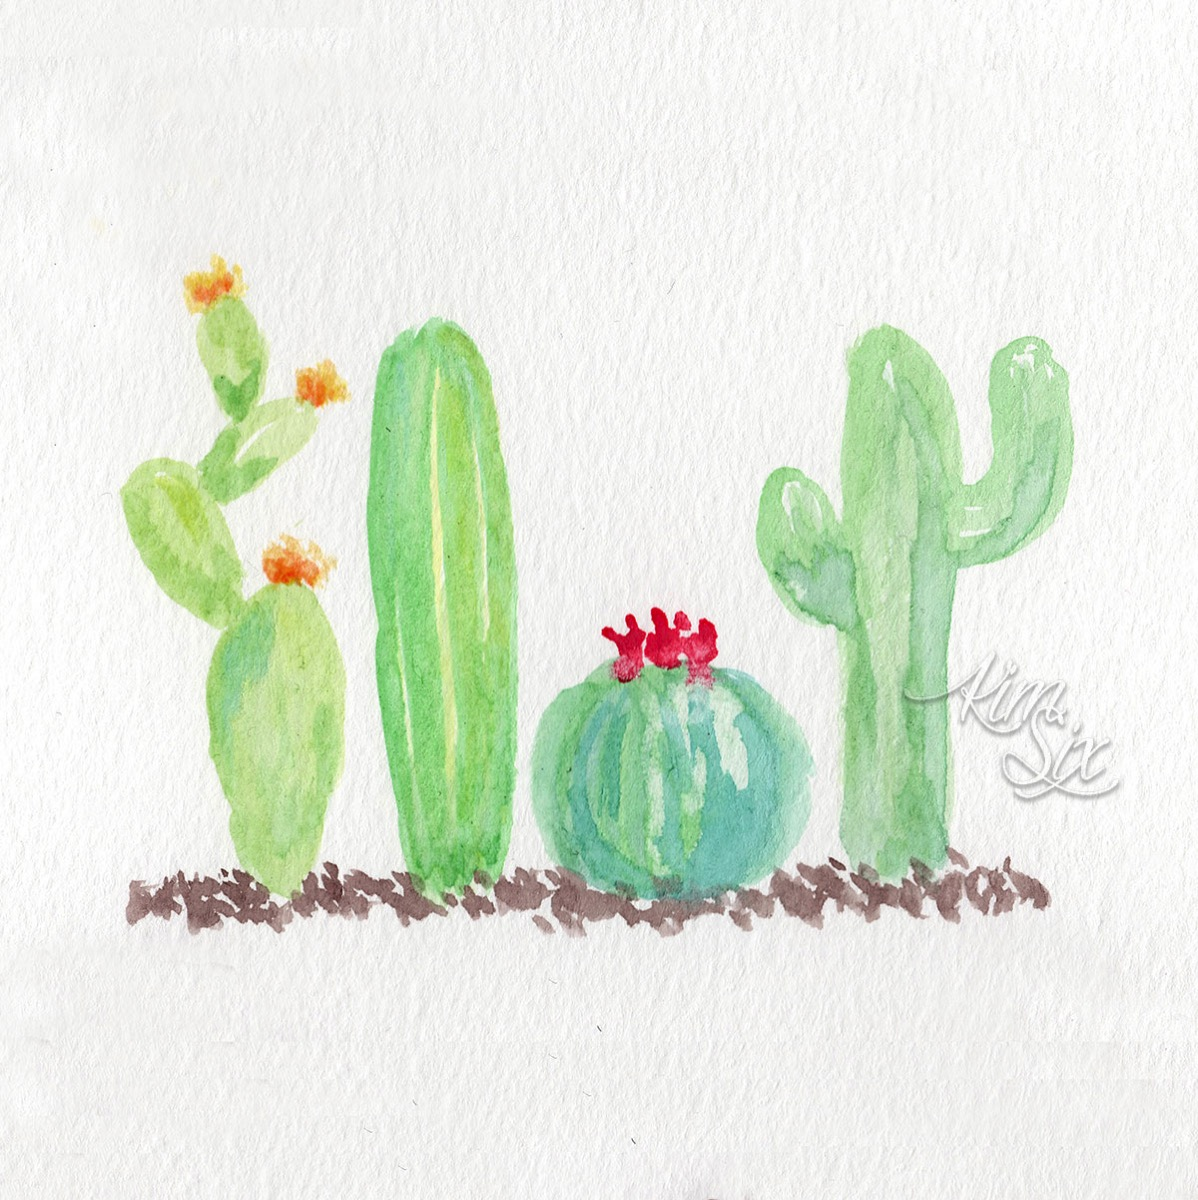 Hand Lettered Cactus Watercolor Printable - The Kim Six Fix